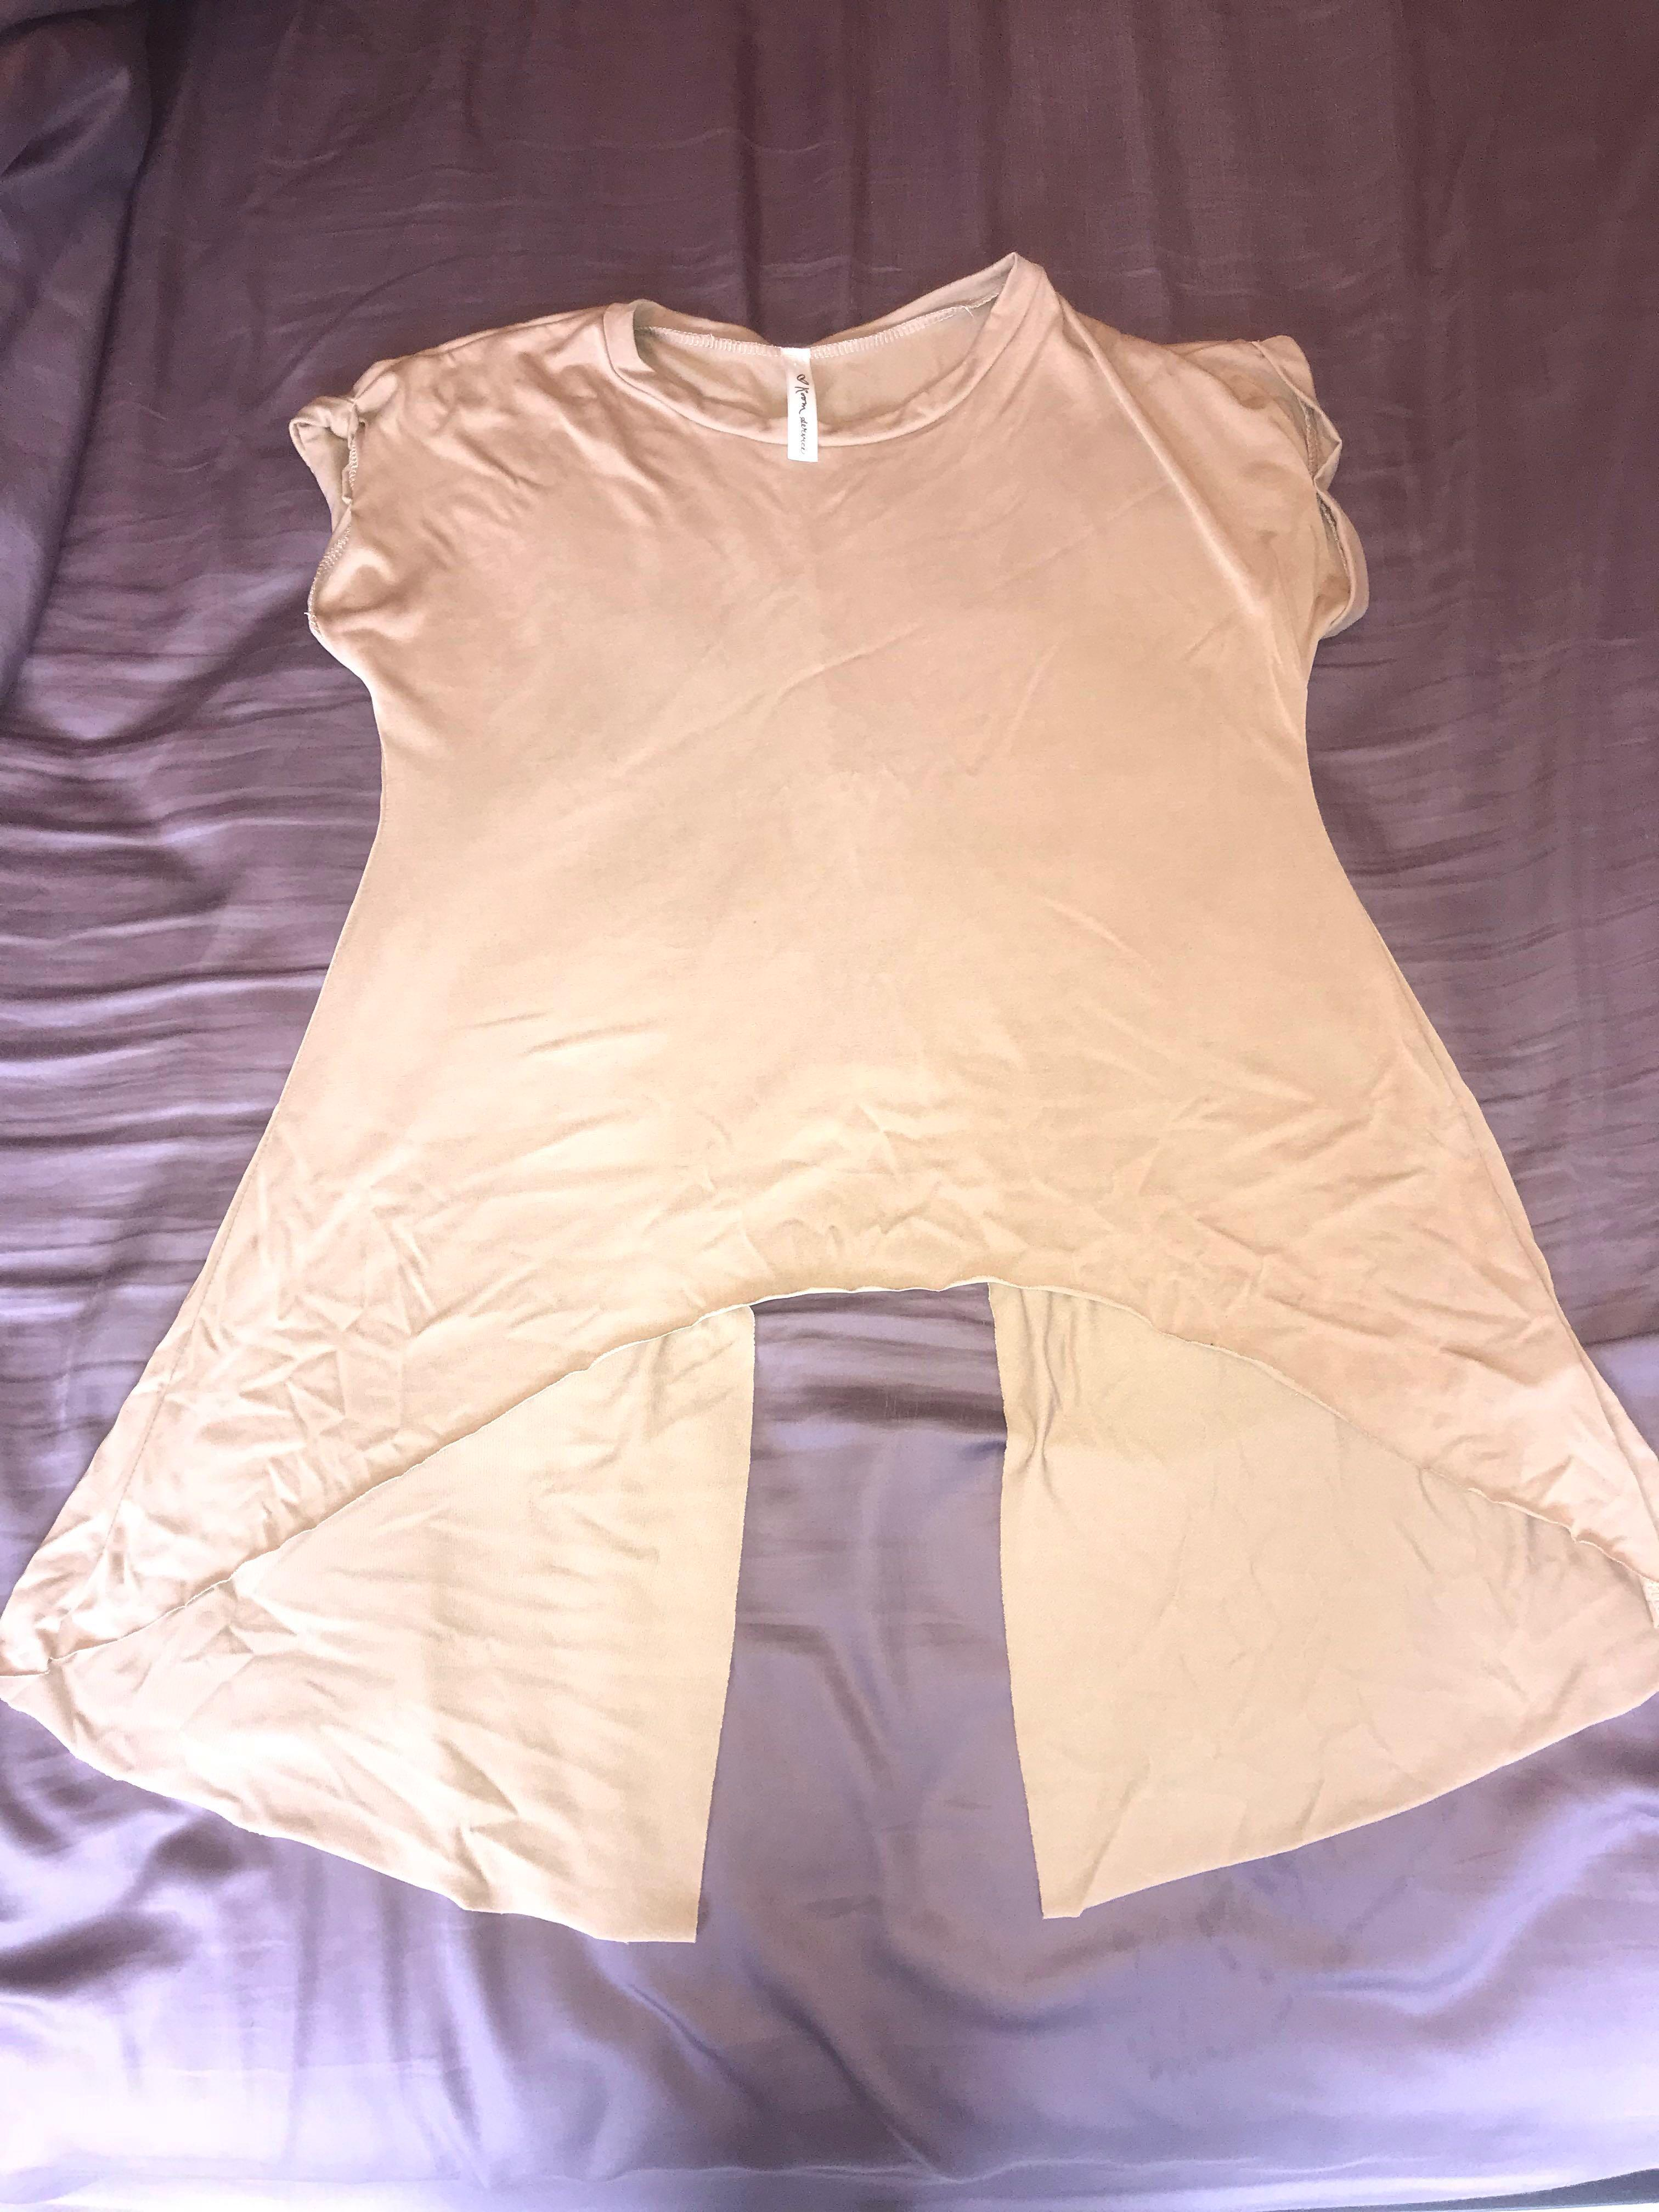 M boutique t-shirt with slit up the back - SIZE SMALL